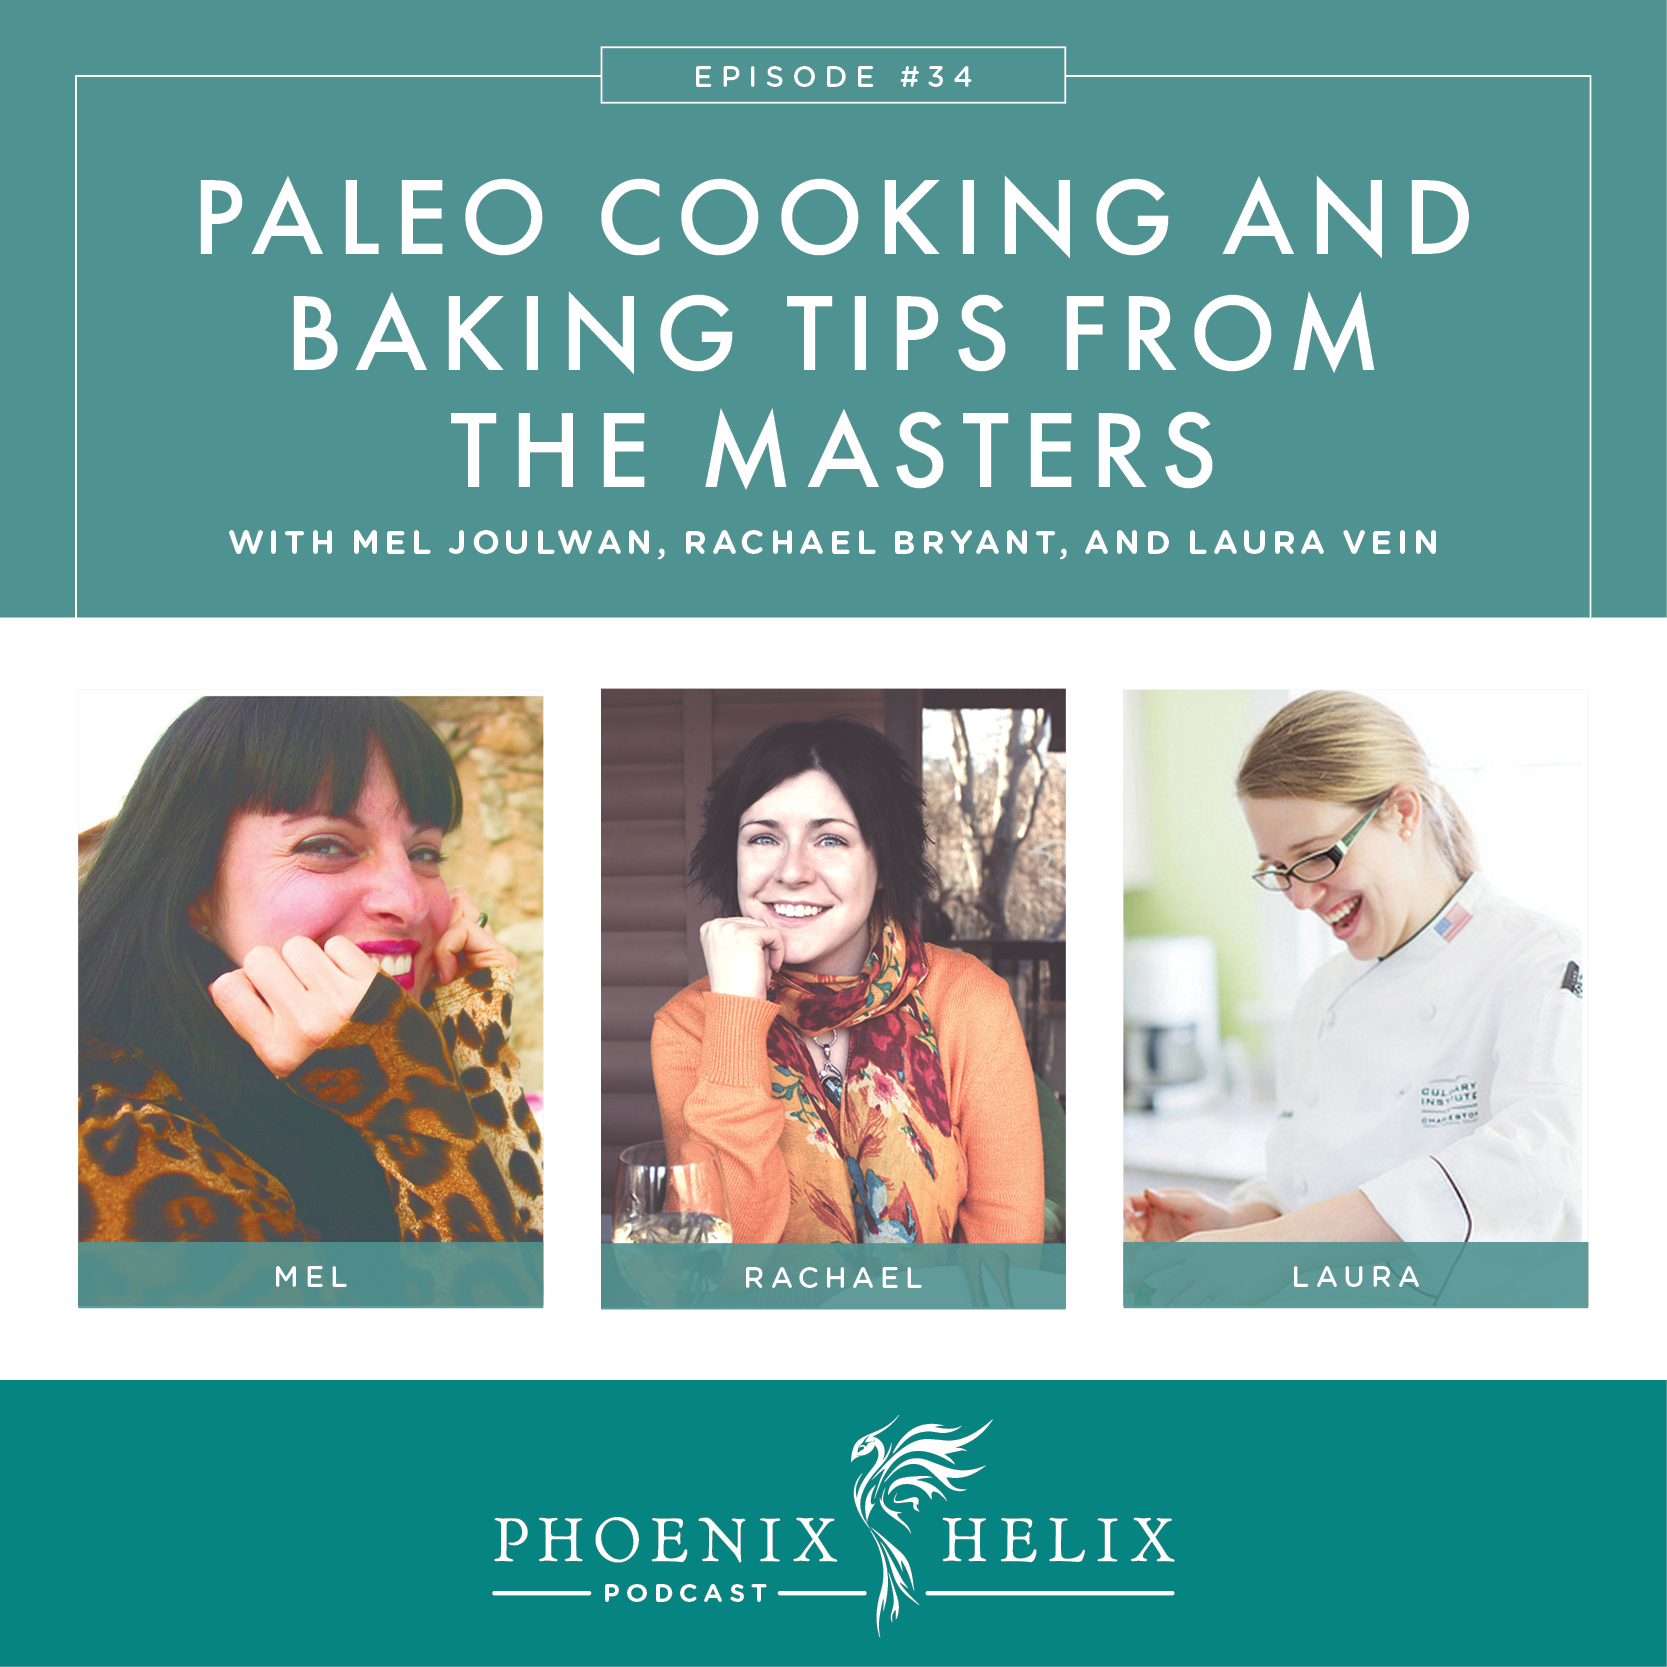 Best of the Phoenix Helix Podcast: Paleo Cooking and Baking Tips from the Masters